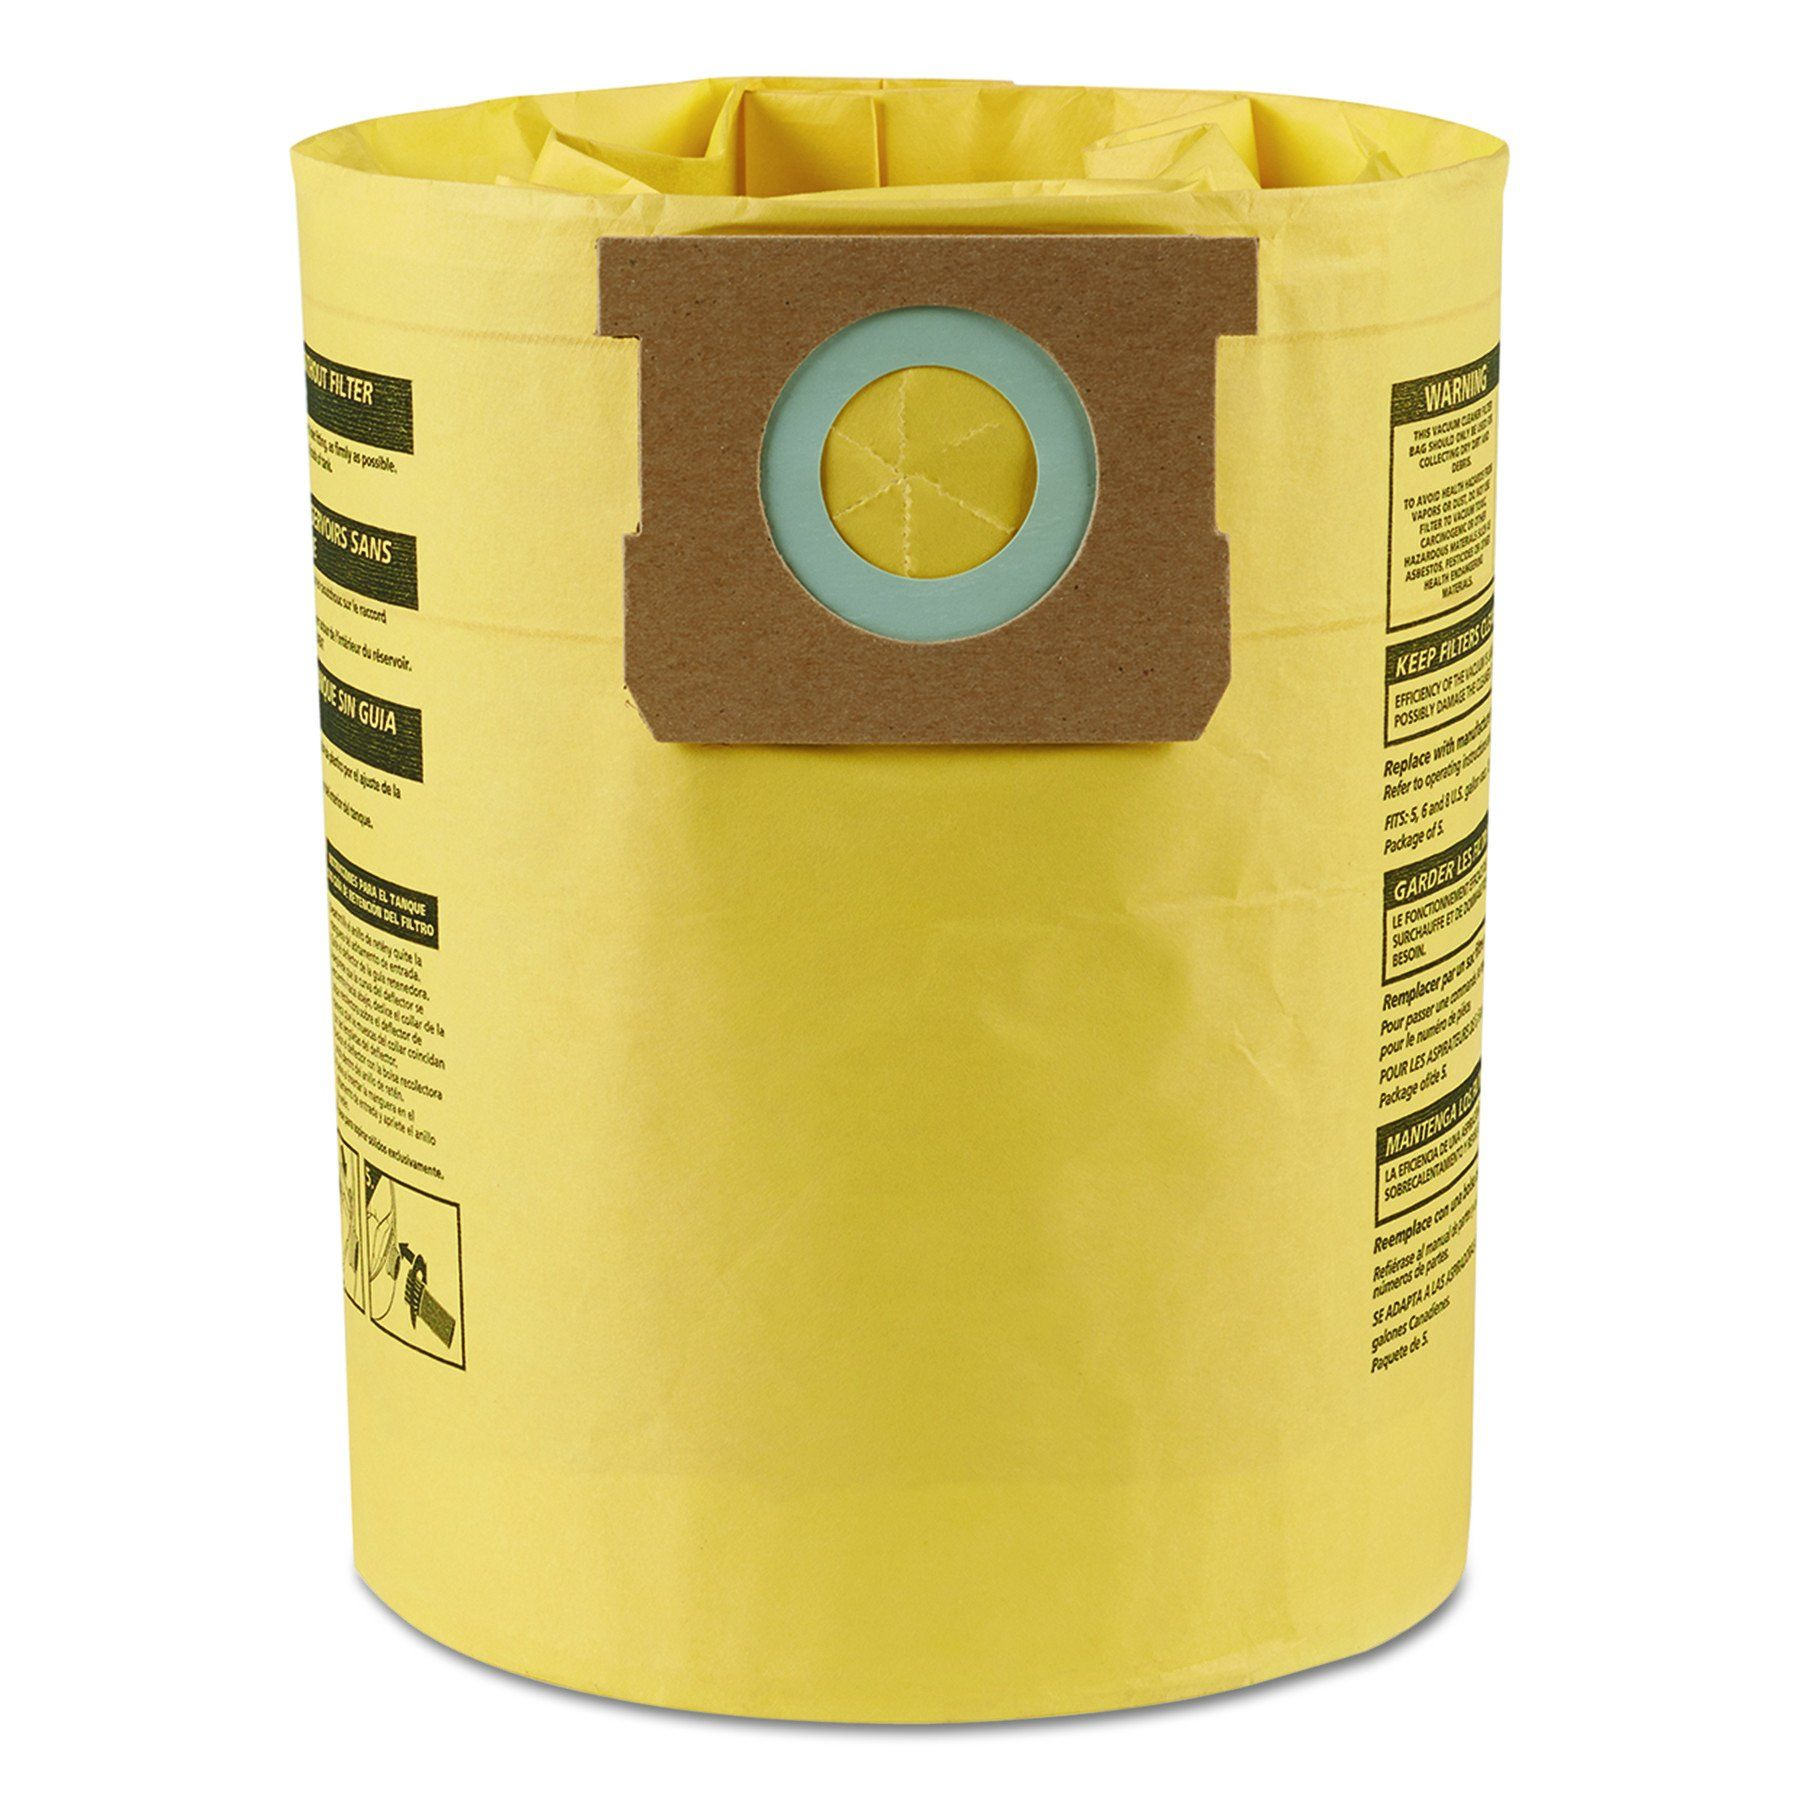 Shop-Vac 90106-00 Genuine Mighty Mini Collection Filter Bags